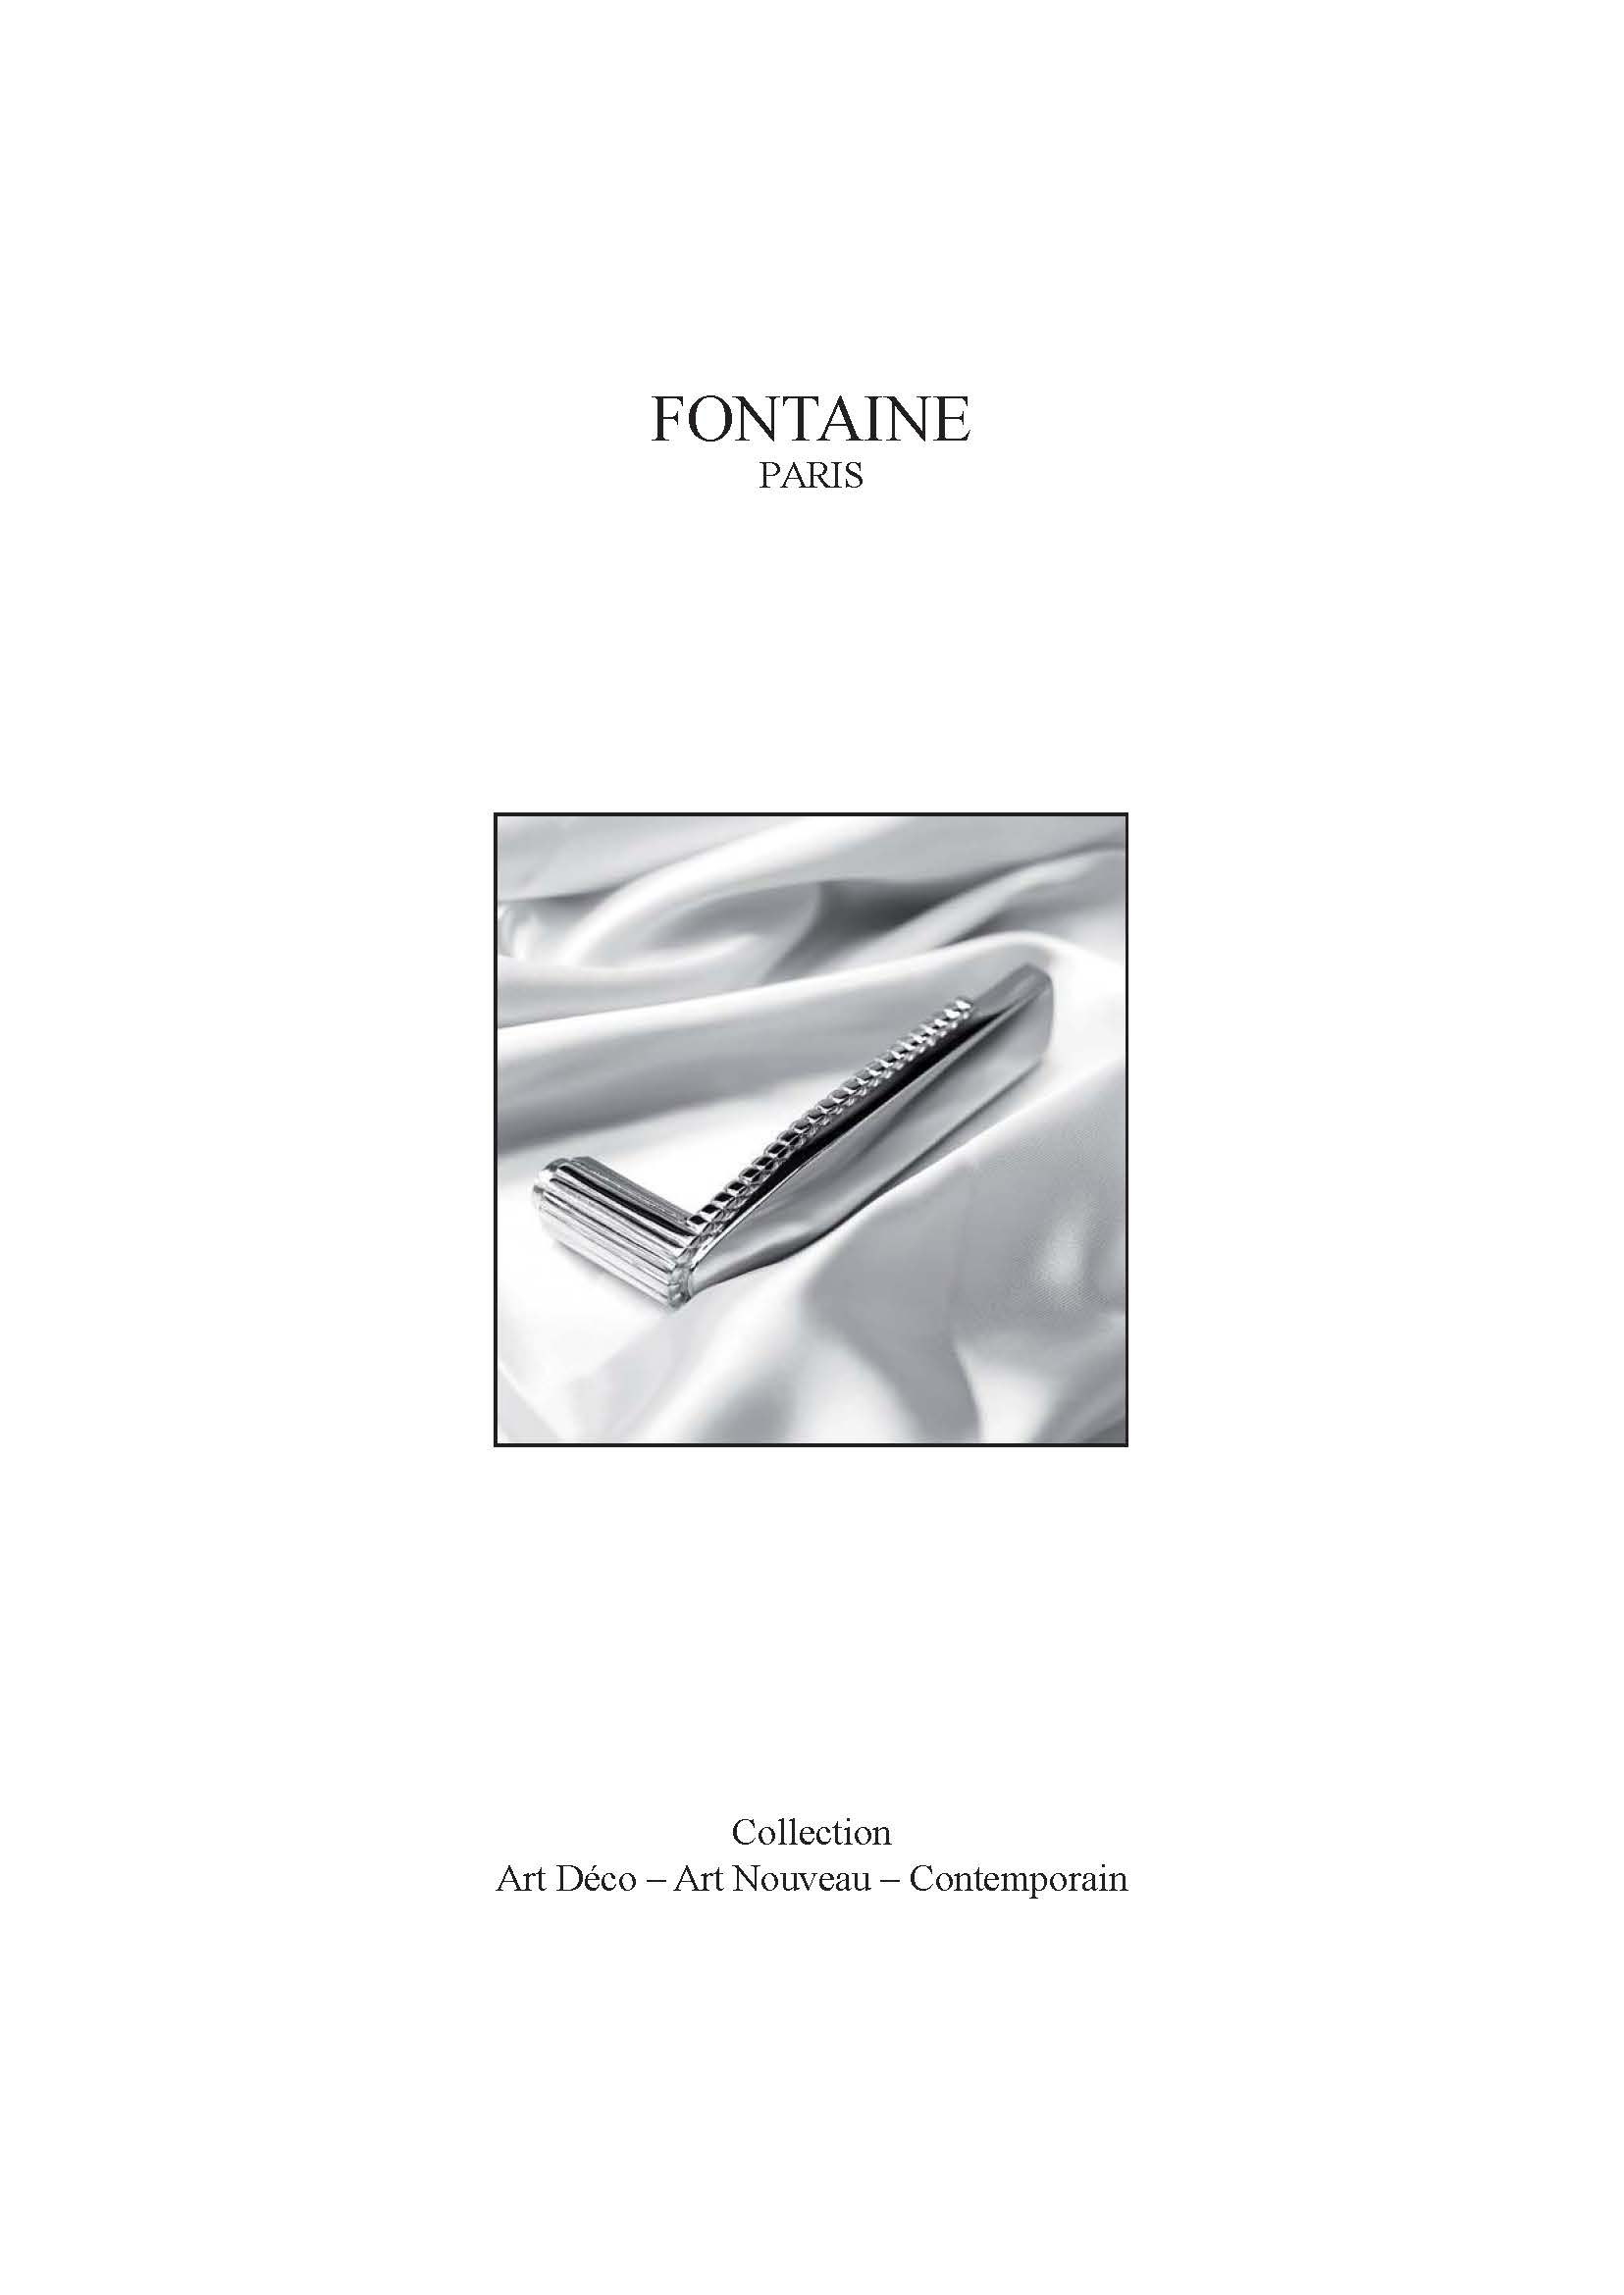 Cote France Catalog_FONTAINE Cover